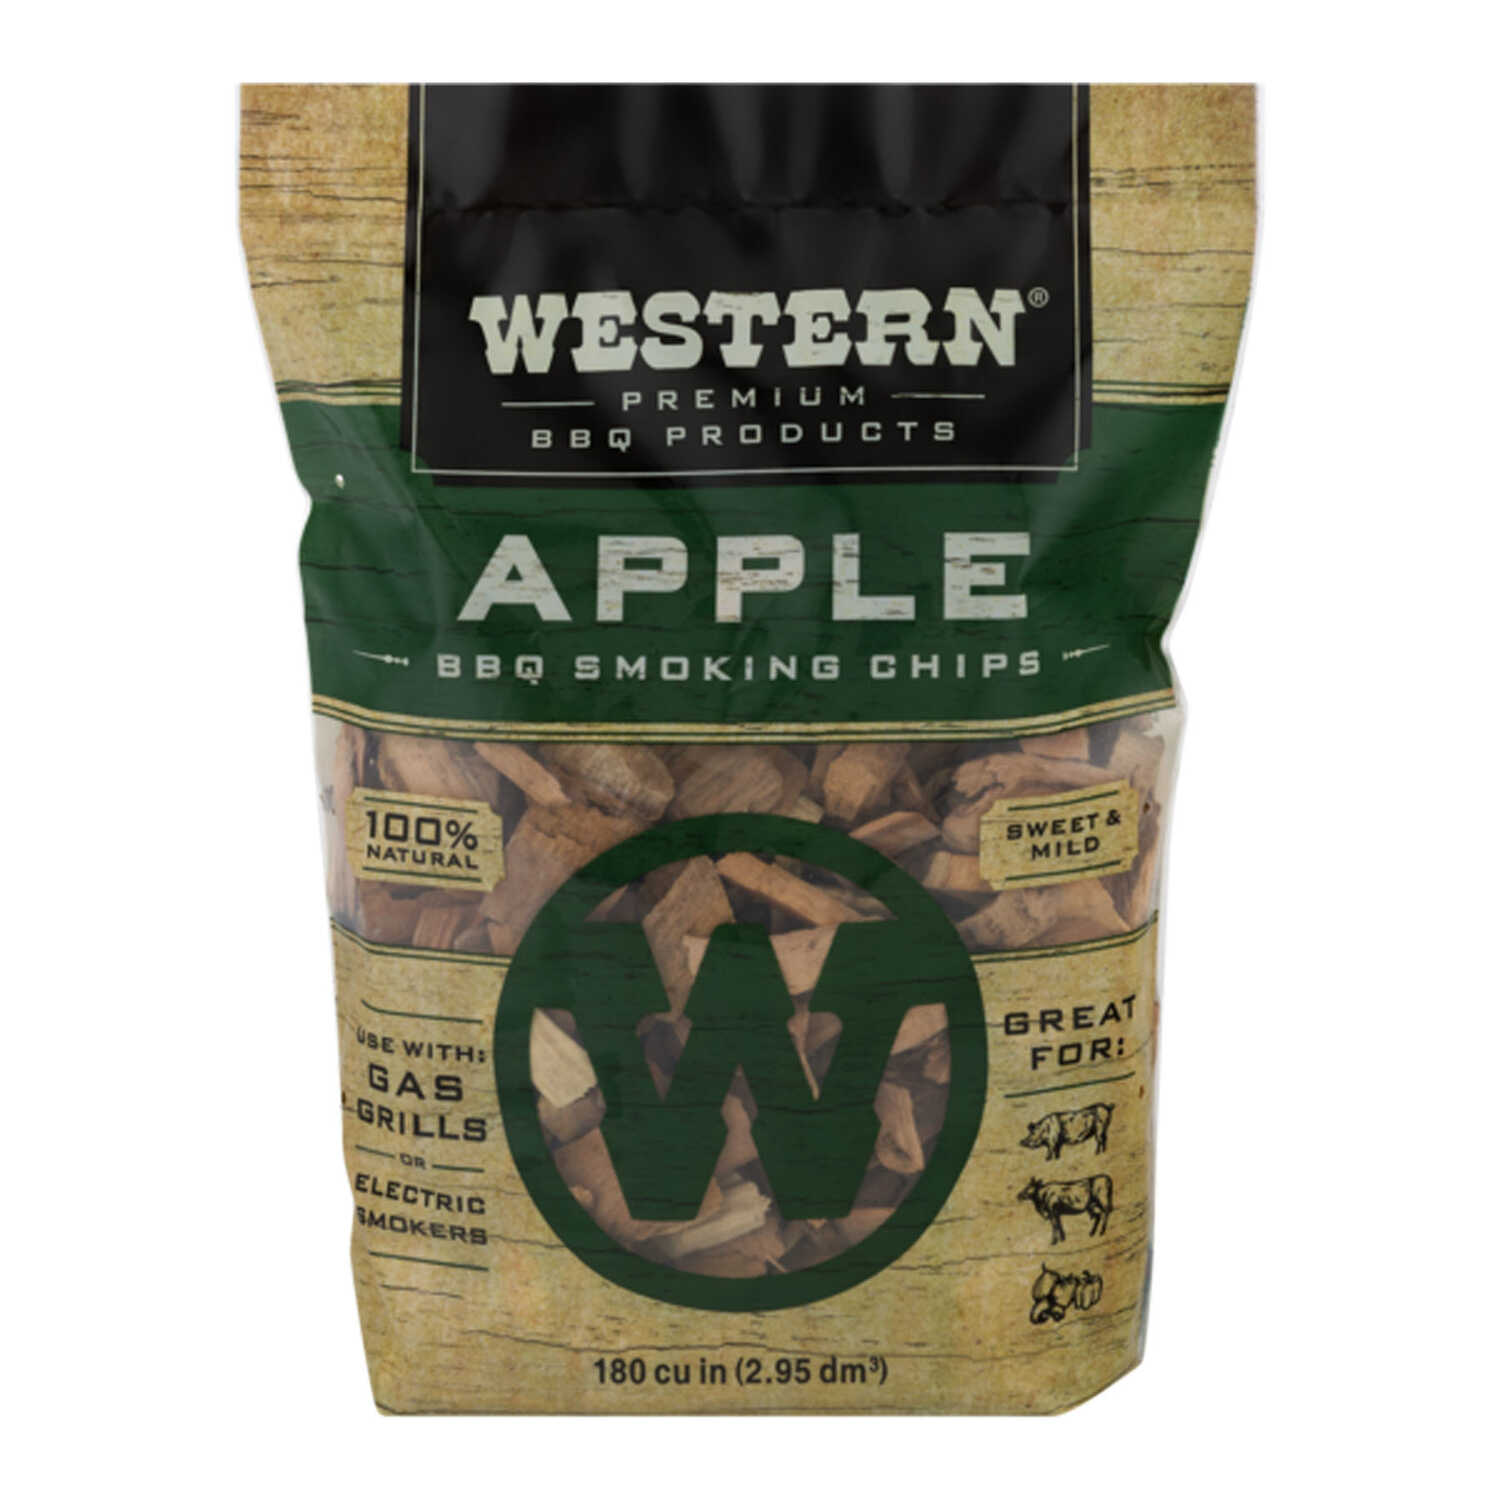 Western  Apple  Wood Smoking Chips  180 cu. in.